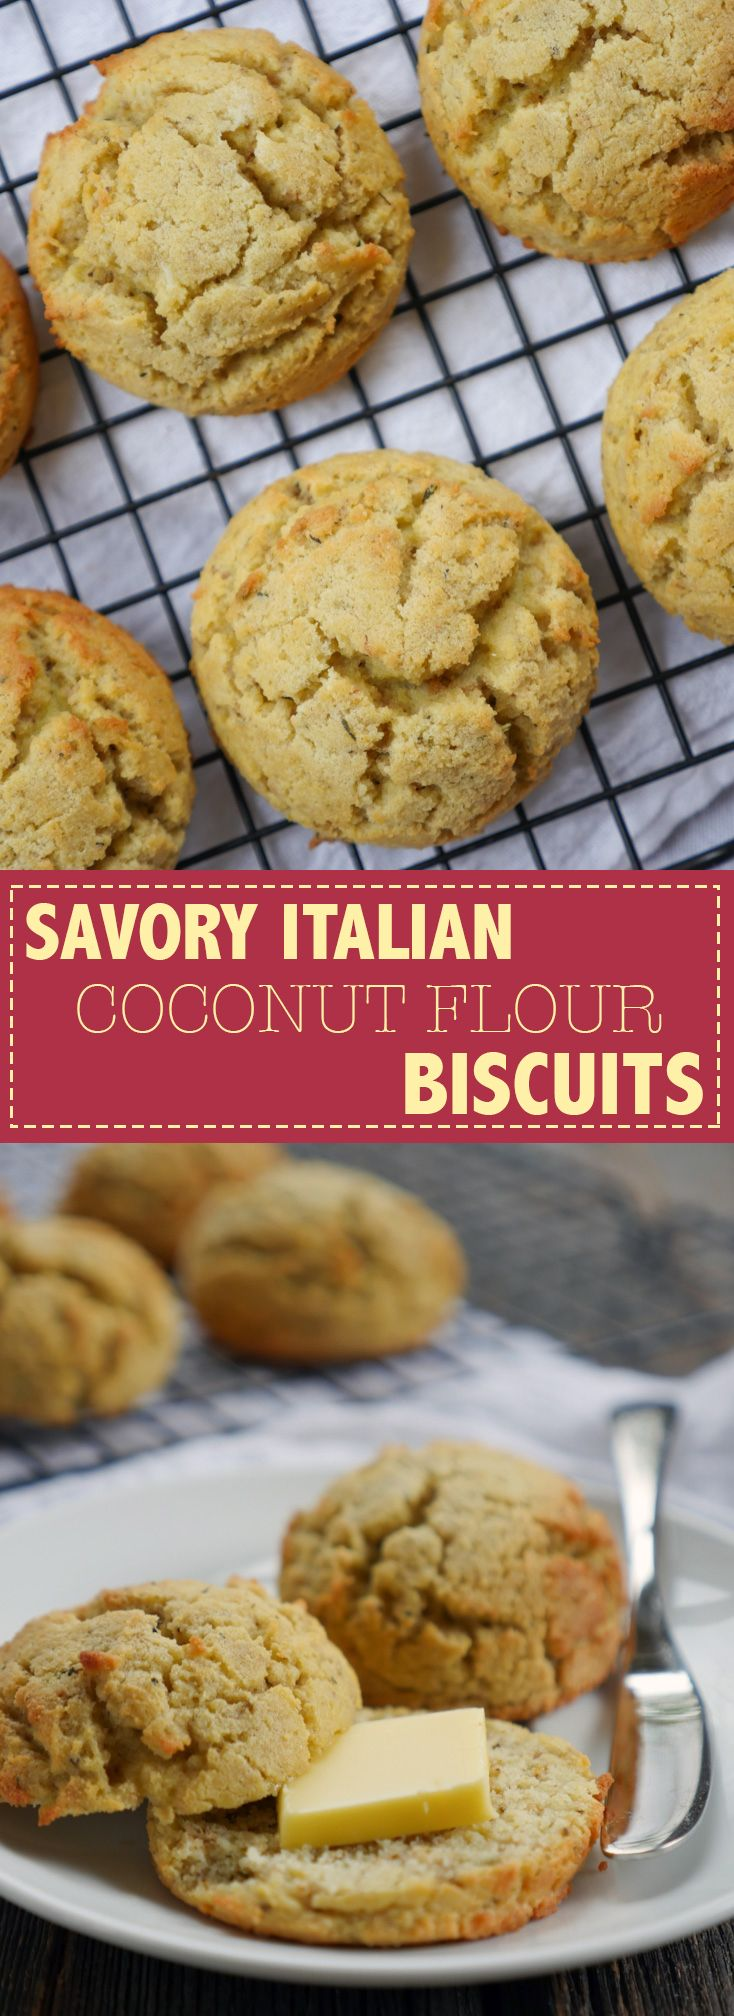 Savory Italian Coconut Flour Biscuits (paleo and nut-free) by Ashley of MyHeartBeets.com